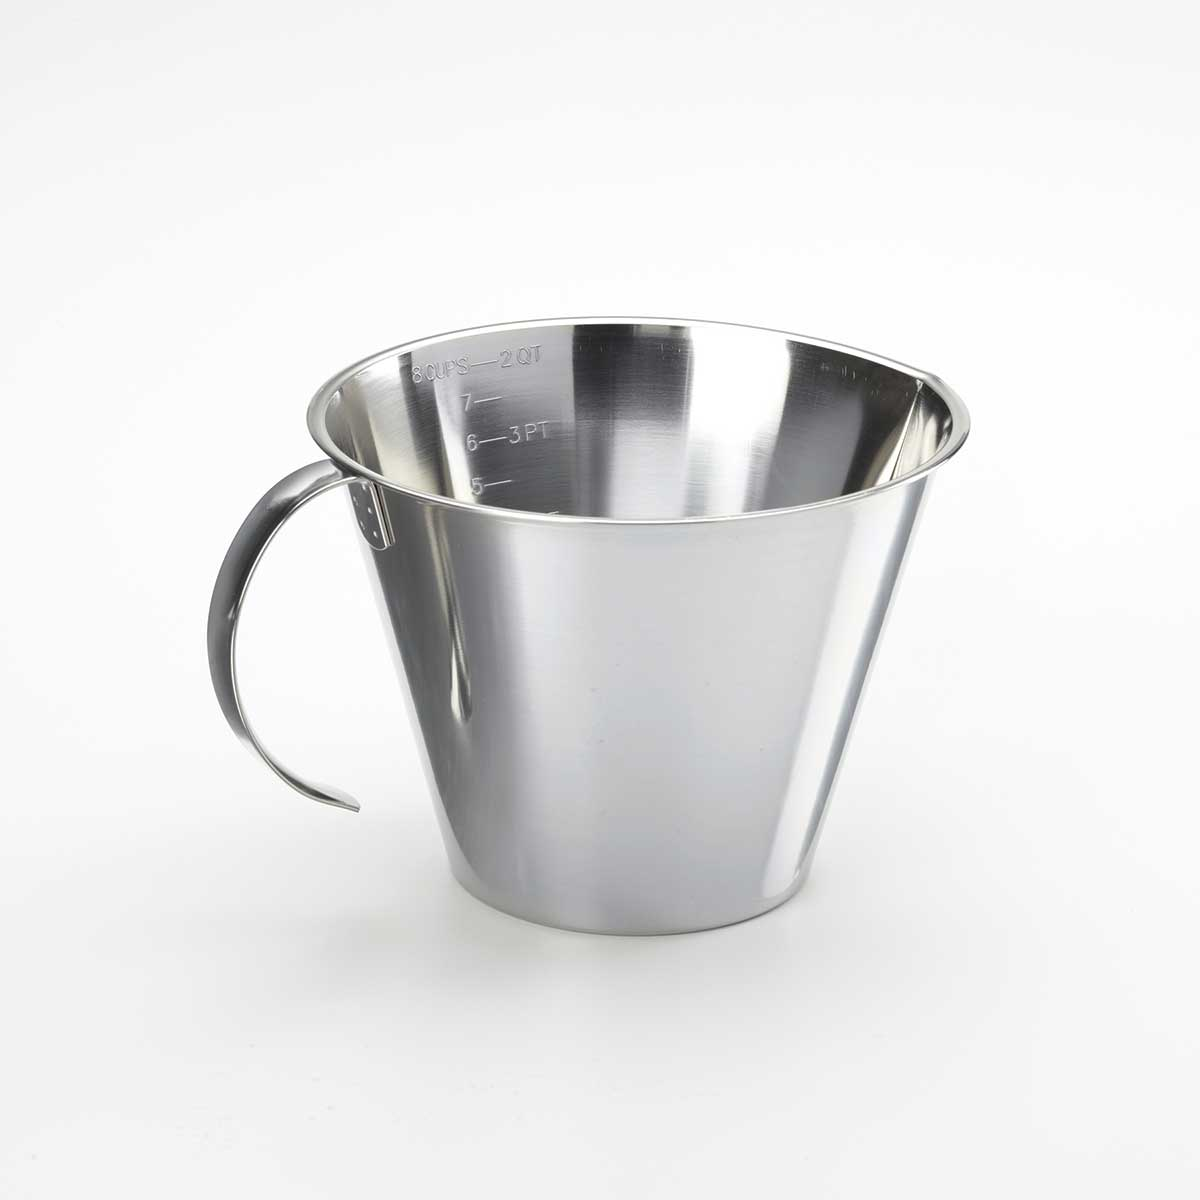 Linden Sweden 8-Cup Stainless Steel Measuring Cup